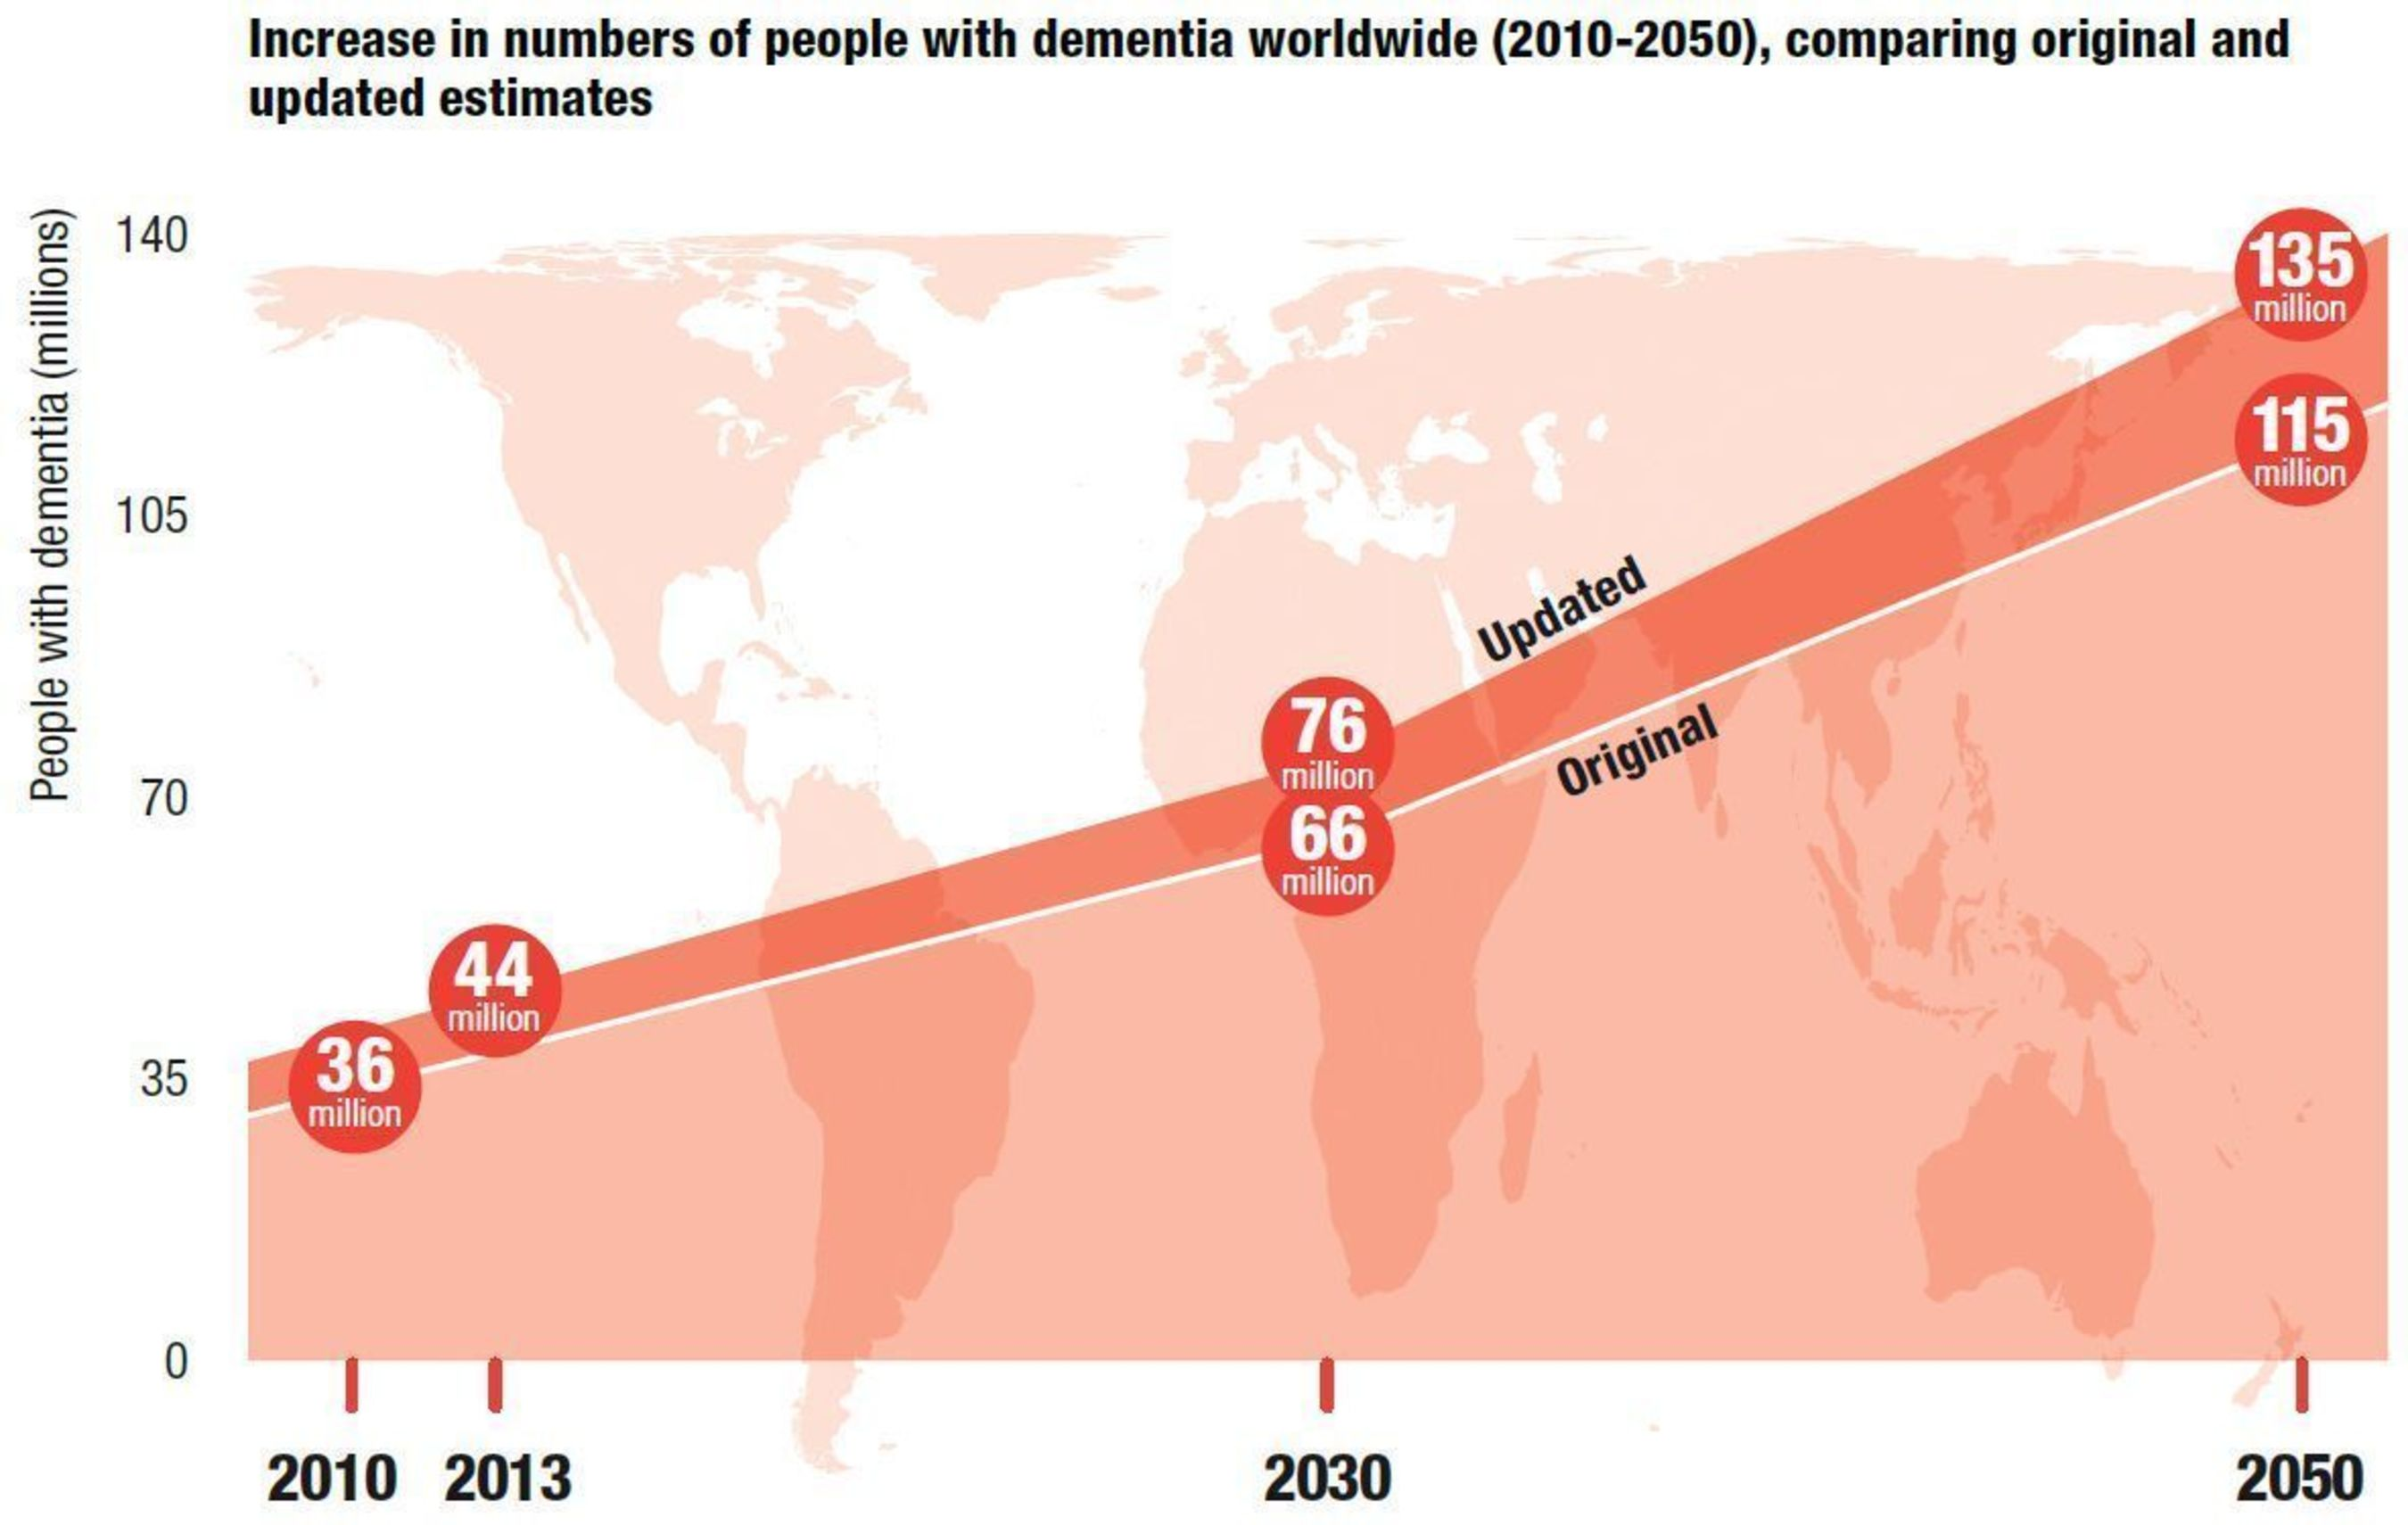 Increase in numbers of people with dementia worldwide (2010-2050), comparing original and updated estimates